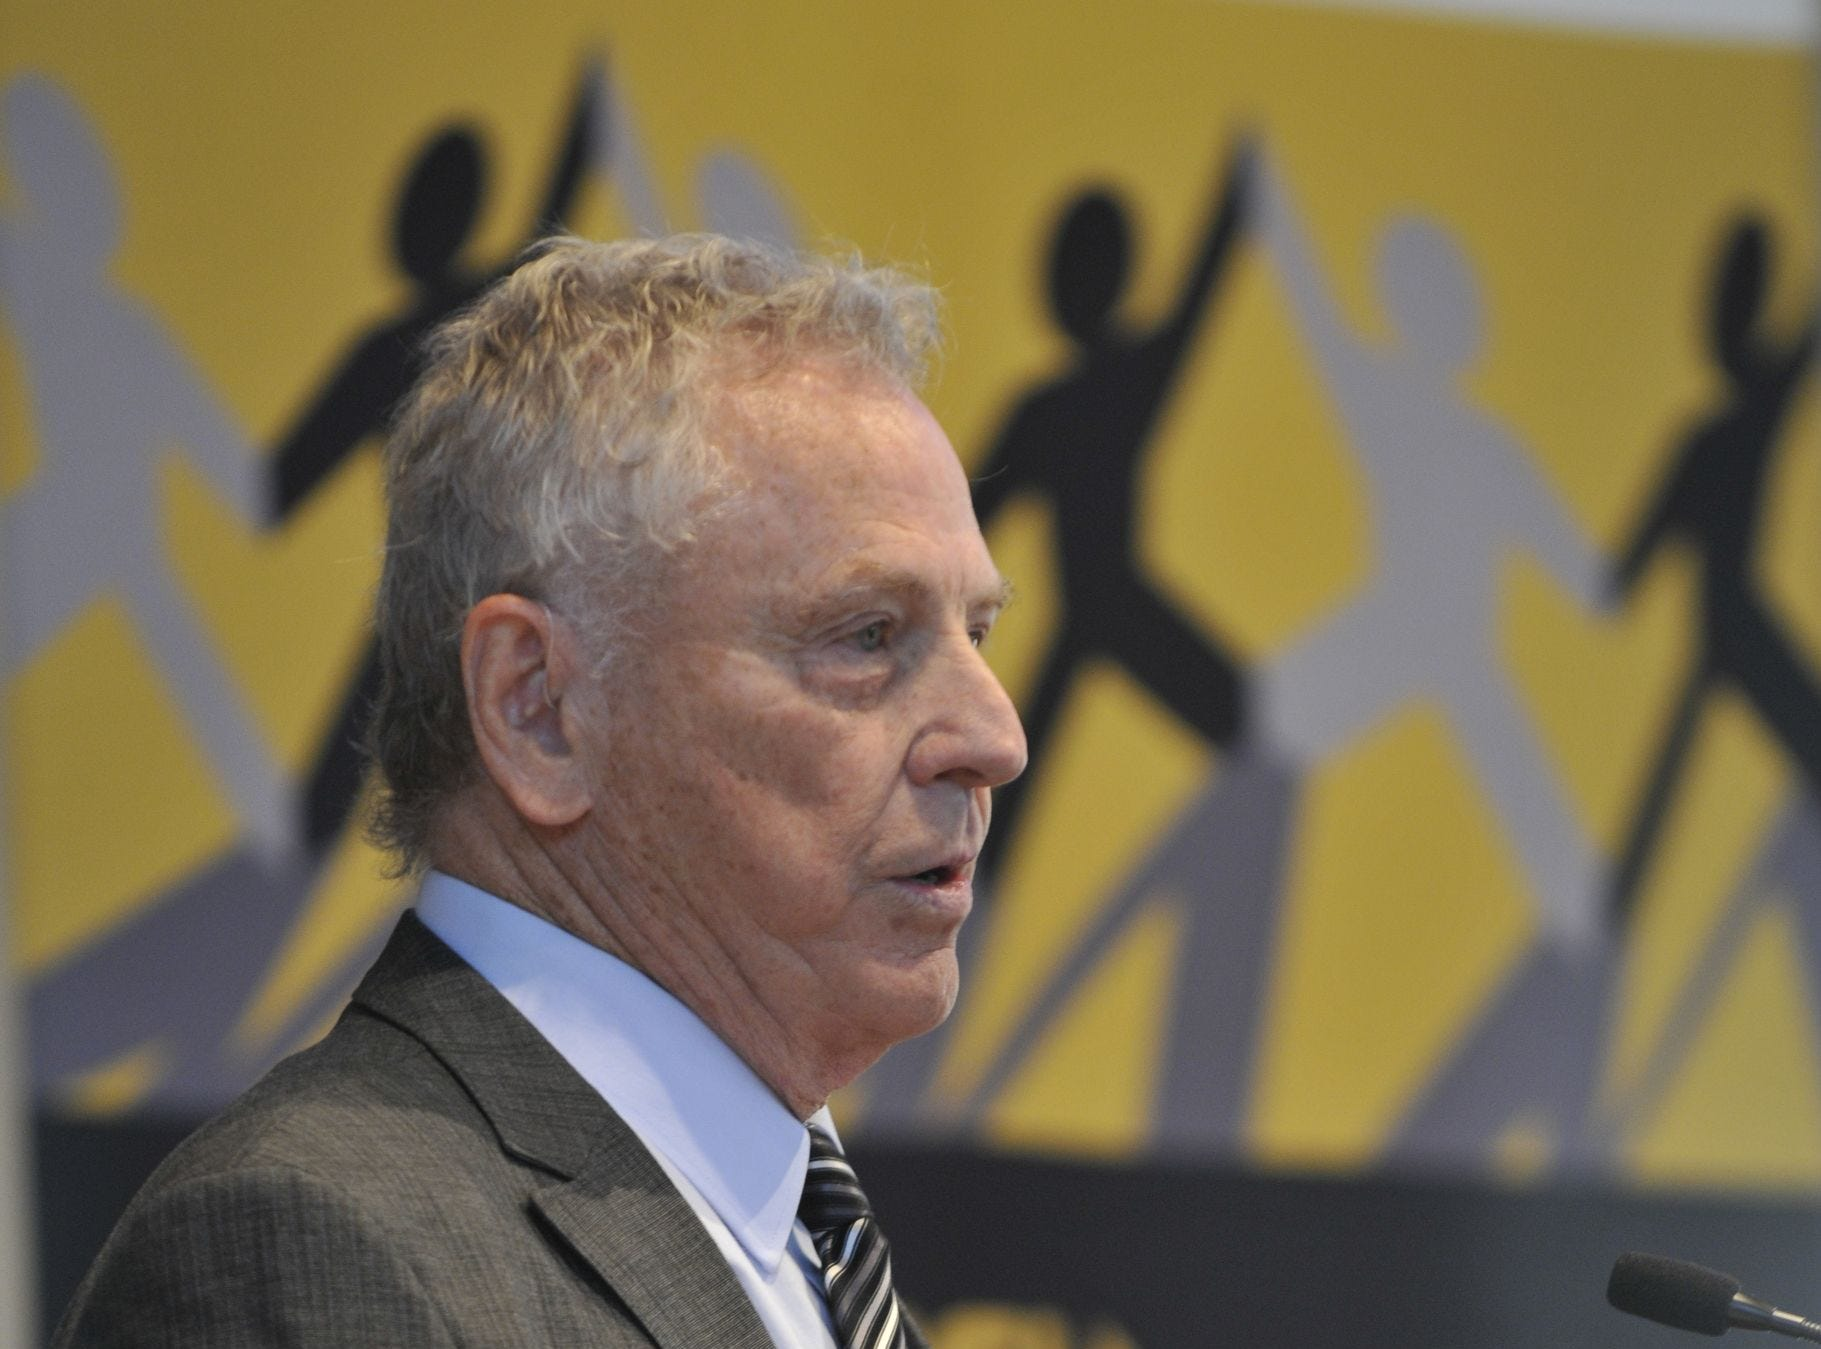 Morris Dees speaks at Alabama State University's Bridge Builders Breakfast at the RSA Activity Center on Thursday, Sept. 20, 2012 in Montgomery, Ala.. (Lloyd Gallman, Montgomery Advertiser)